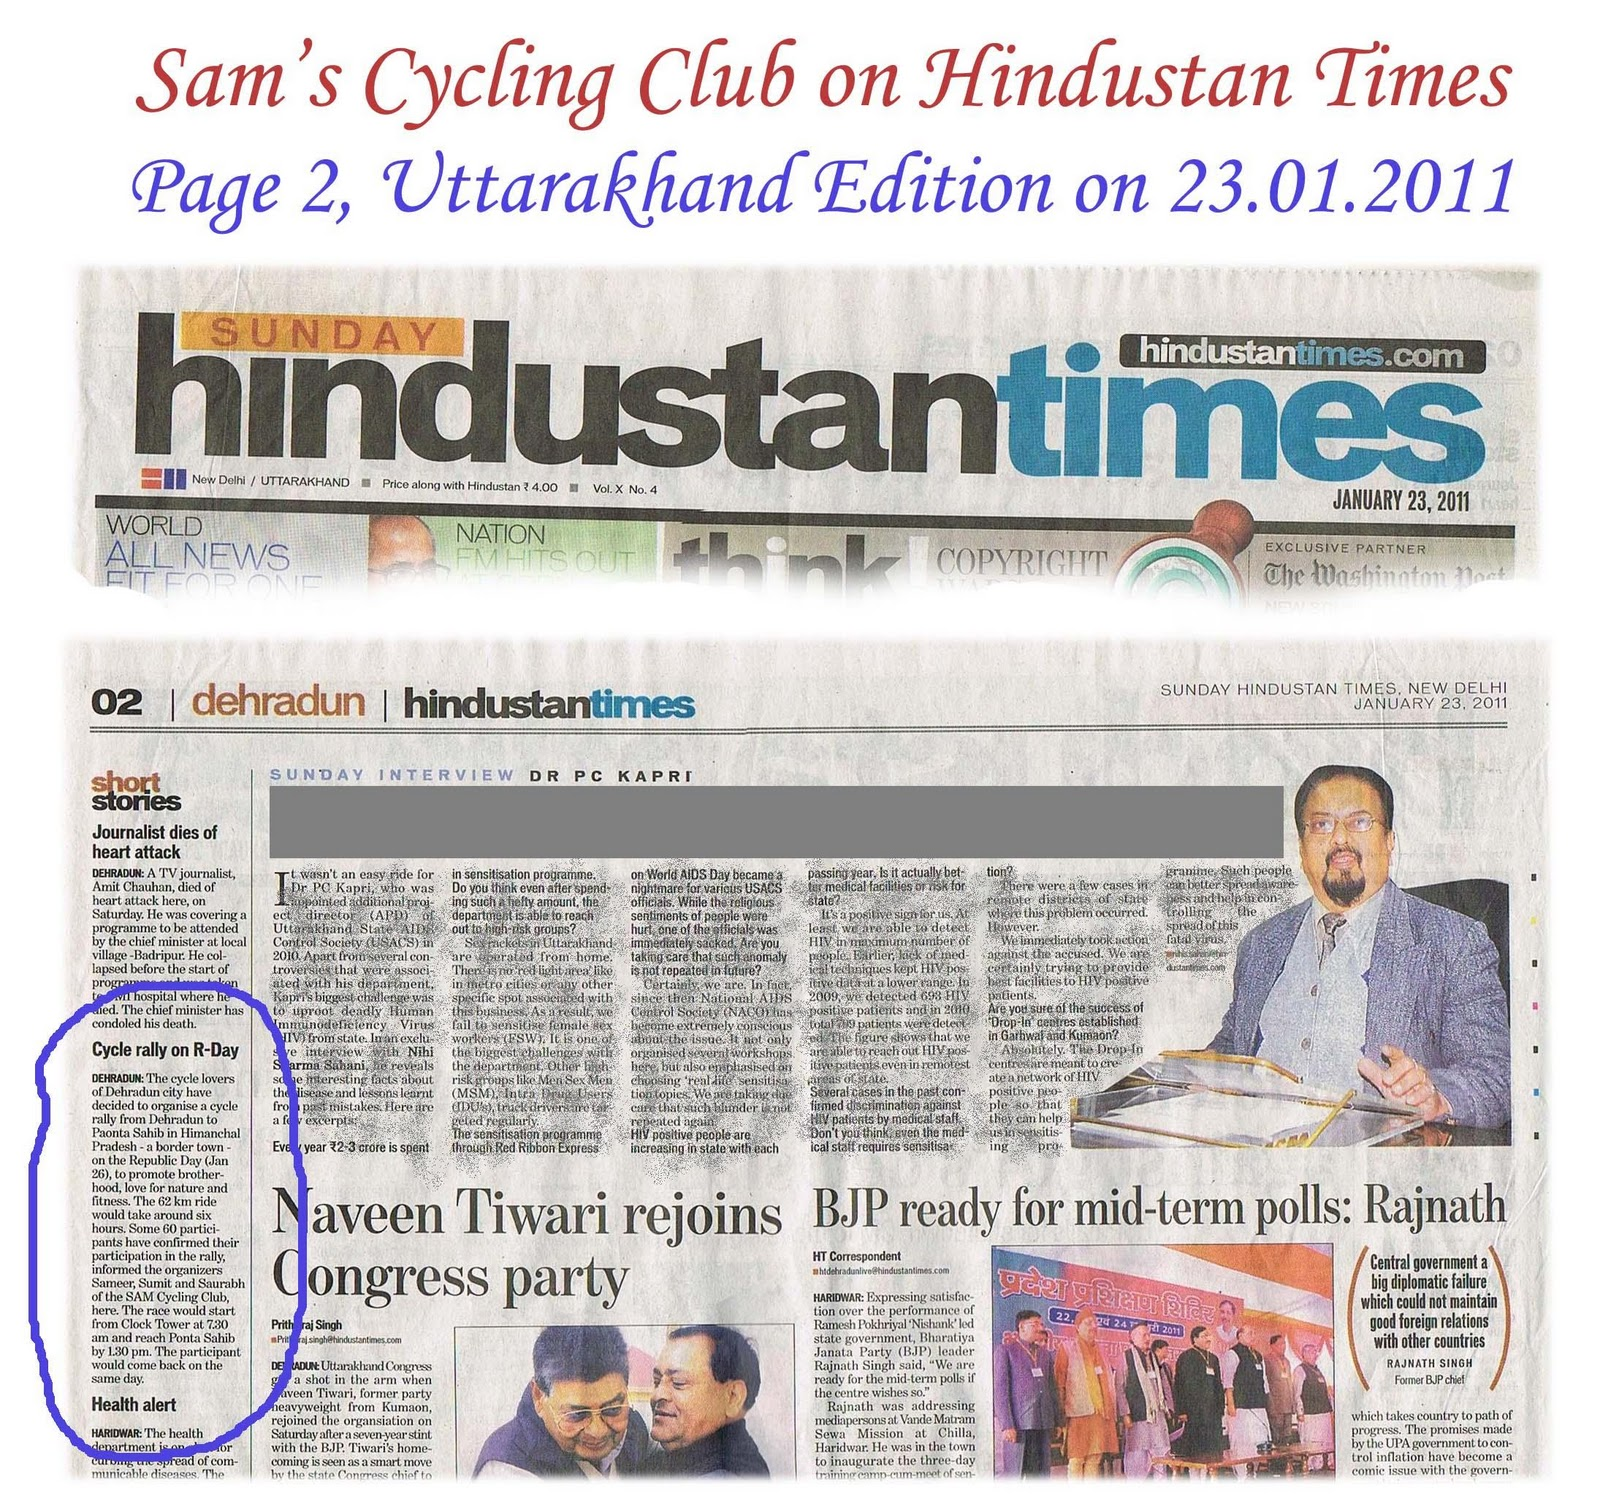 hindustan times images